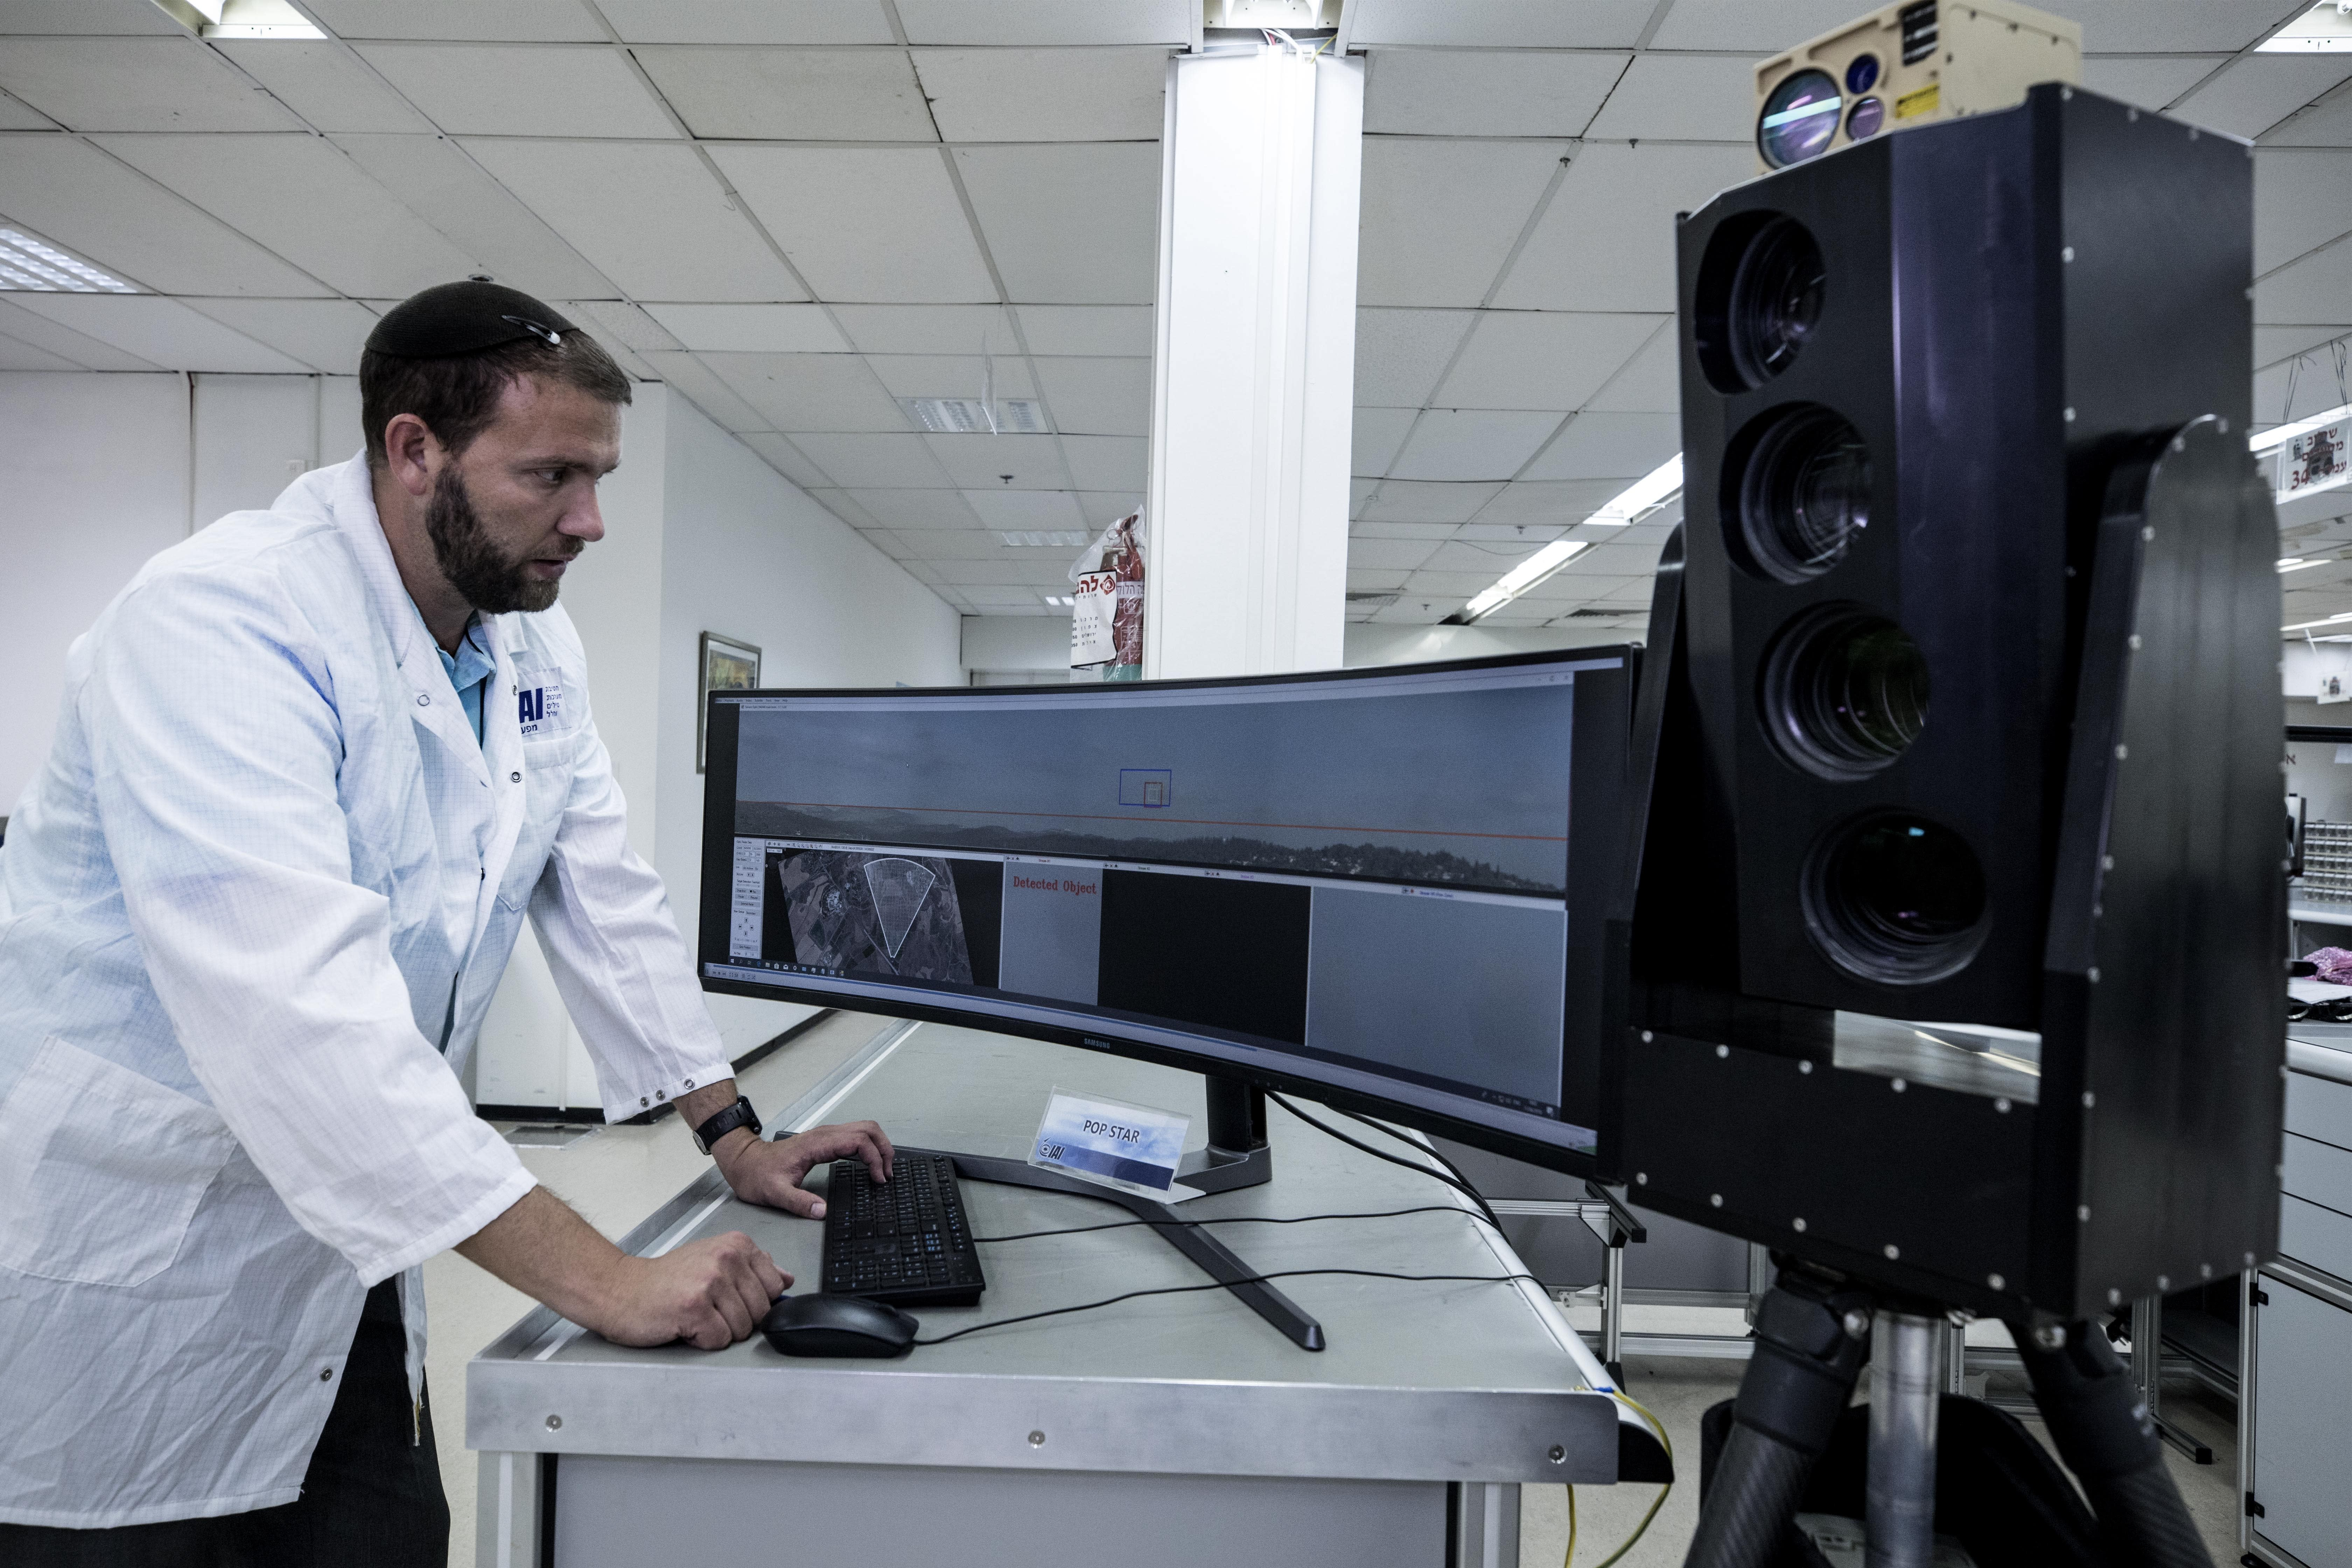 In this Monday, Sept. 9, 2019 photo, Ariel Gomez, a systems engineer at Israel Aerospace Industries, works on the Popstar system that can track and identify flying objects day or night without being detected, at Israel Aerospace Industries, in the Israeli town of Yehud near Tel Aviv. Israel has long been a dominant player in the military drone export business, developing small attack aircraft as well as long-range spy planes. Now, Israeli firms are at the forefront of a global industry developing means to protect against the drone threat. (AP Photo/Tsafrir Abayov)